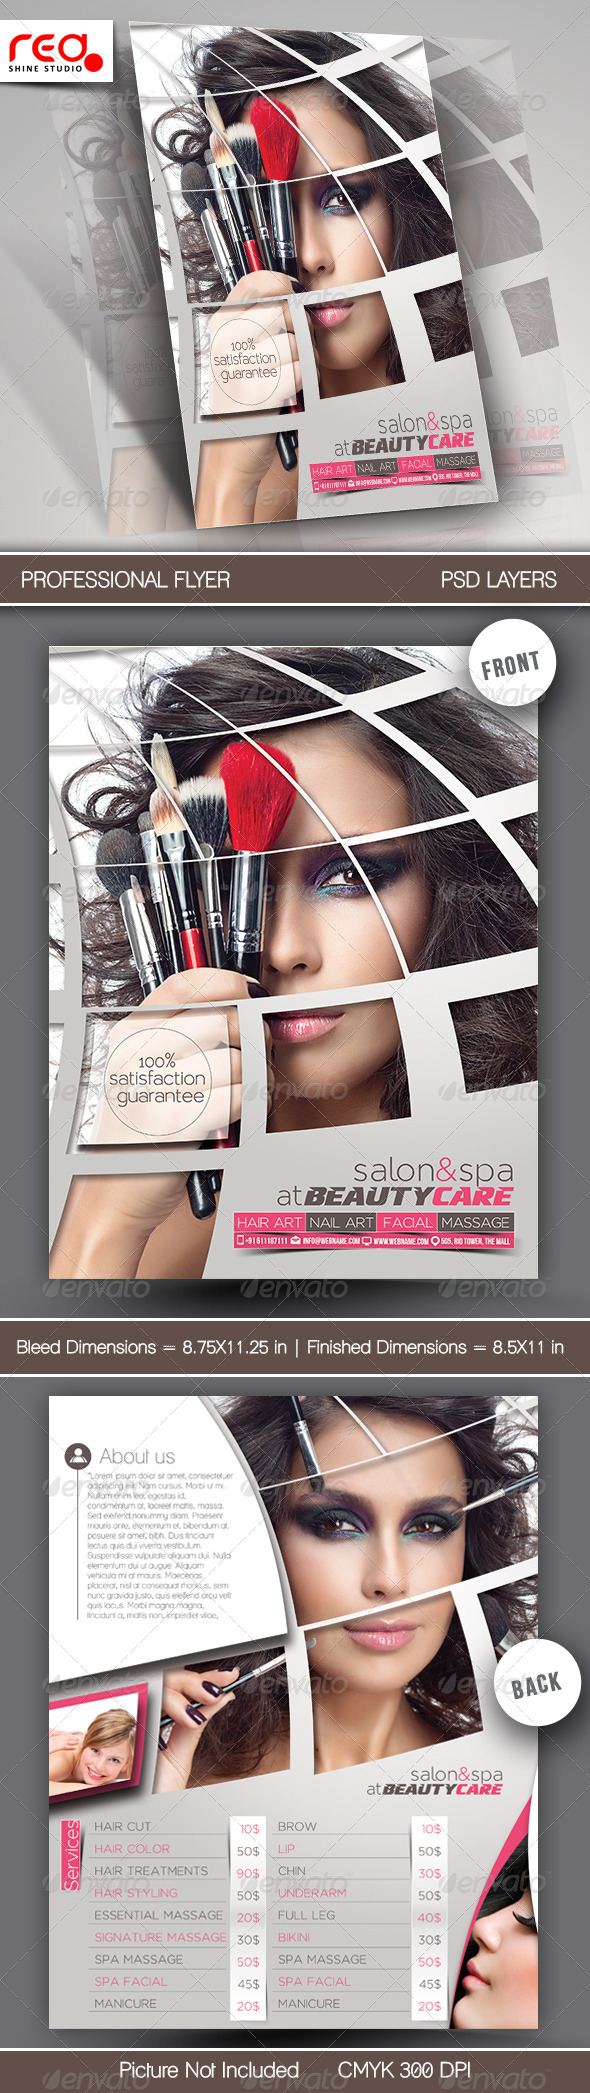 Beauty Care & Salon Flyer Template - Commerce Flyers